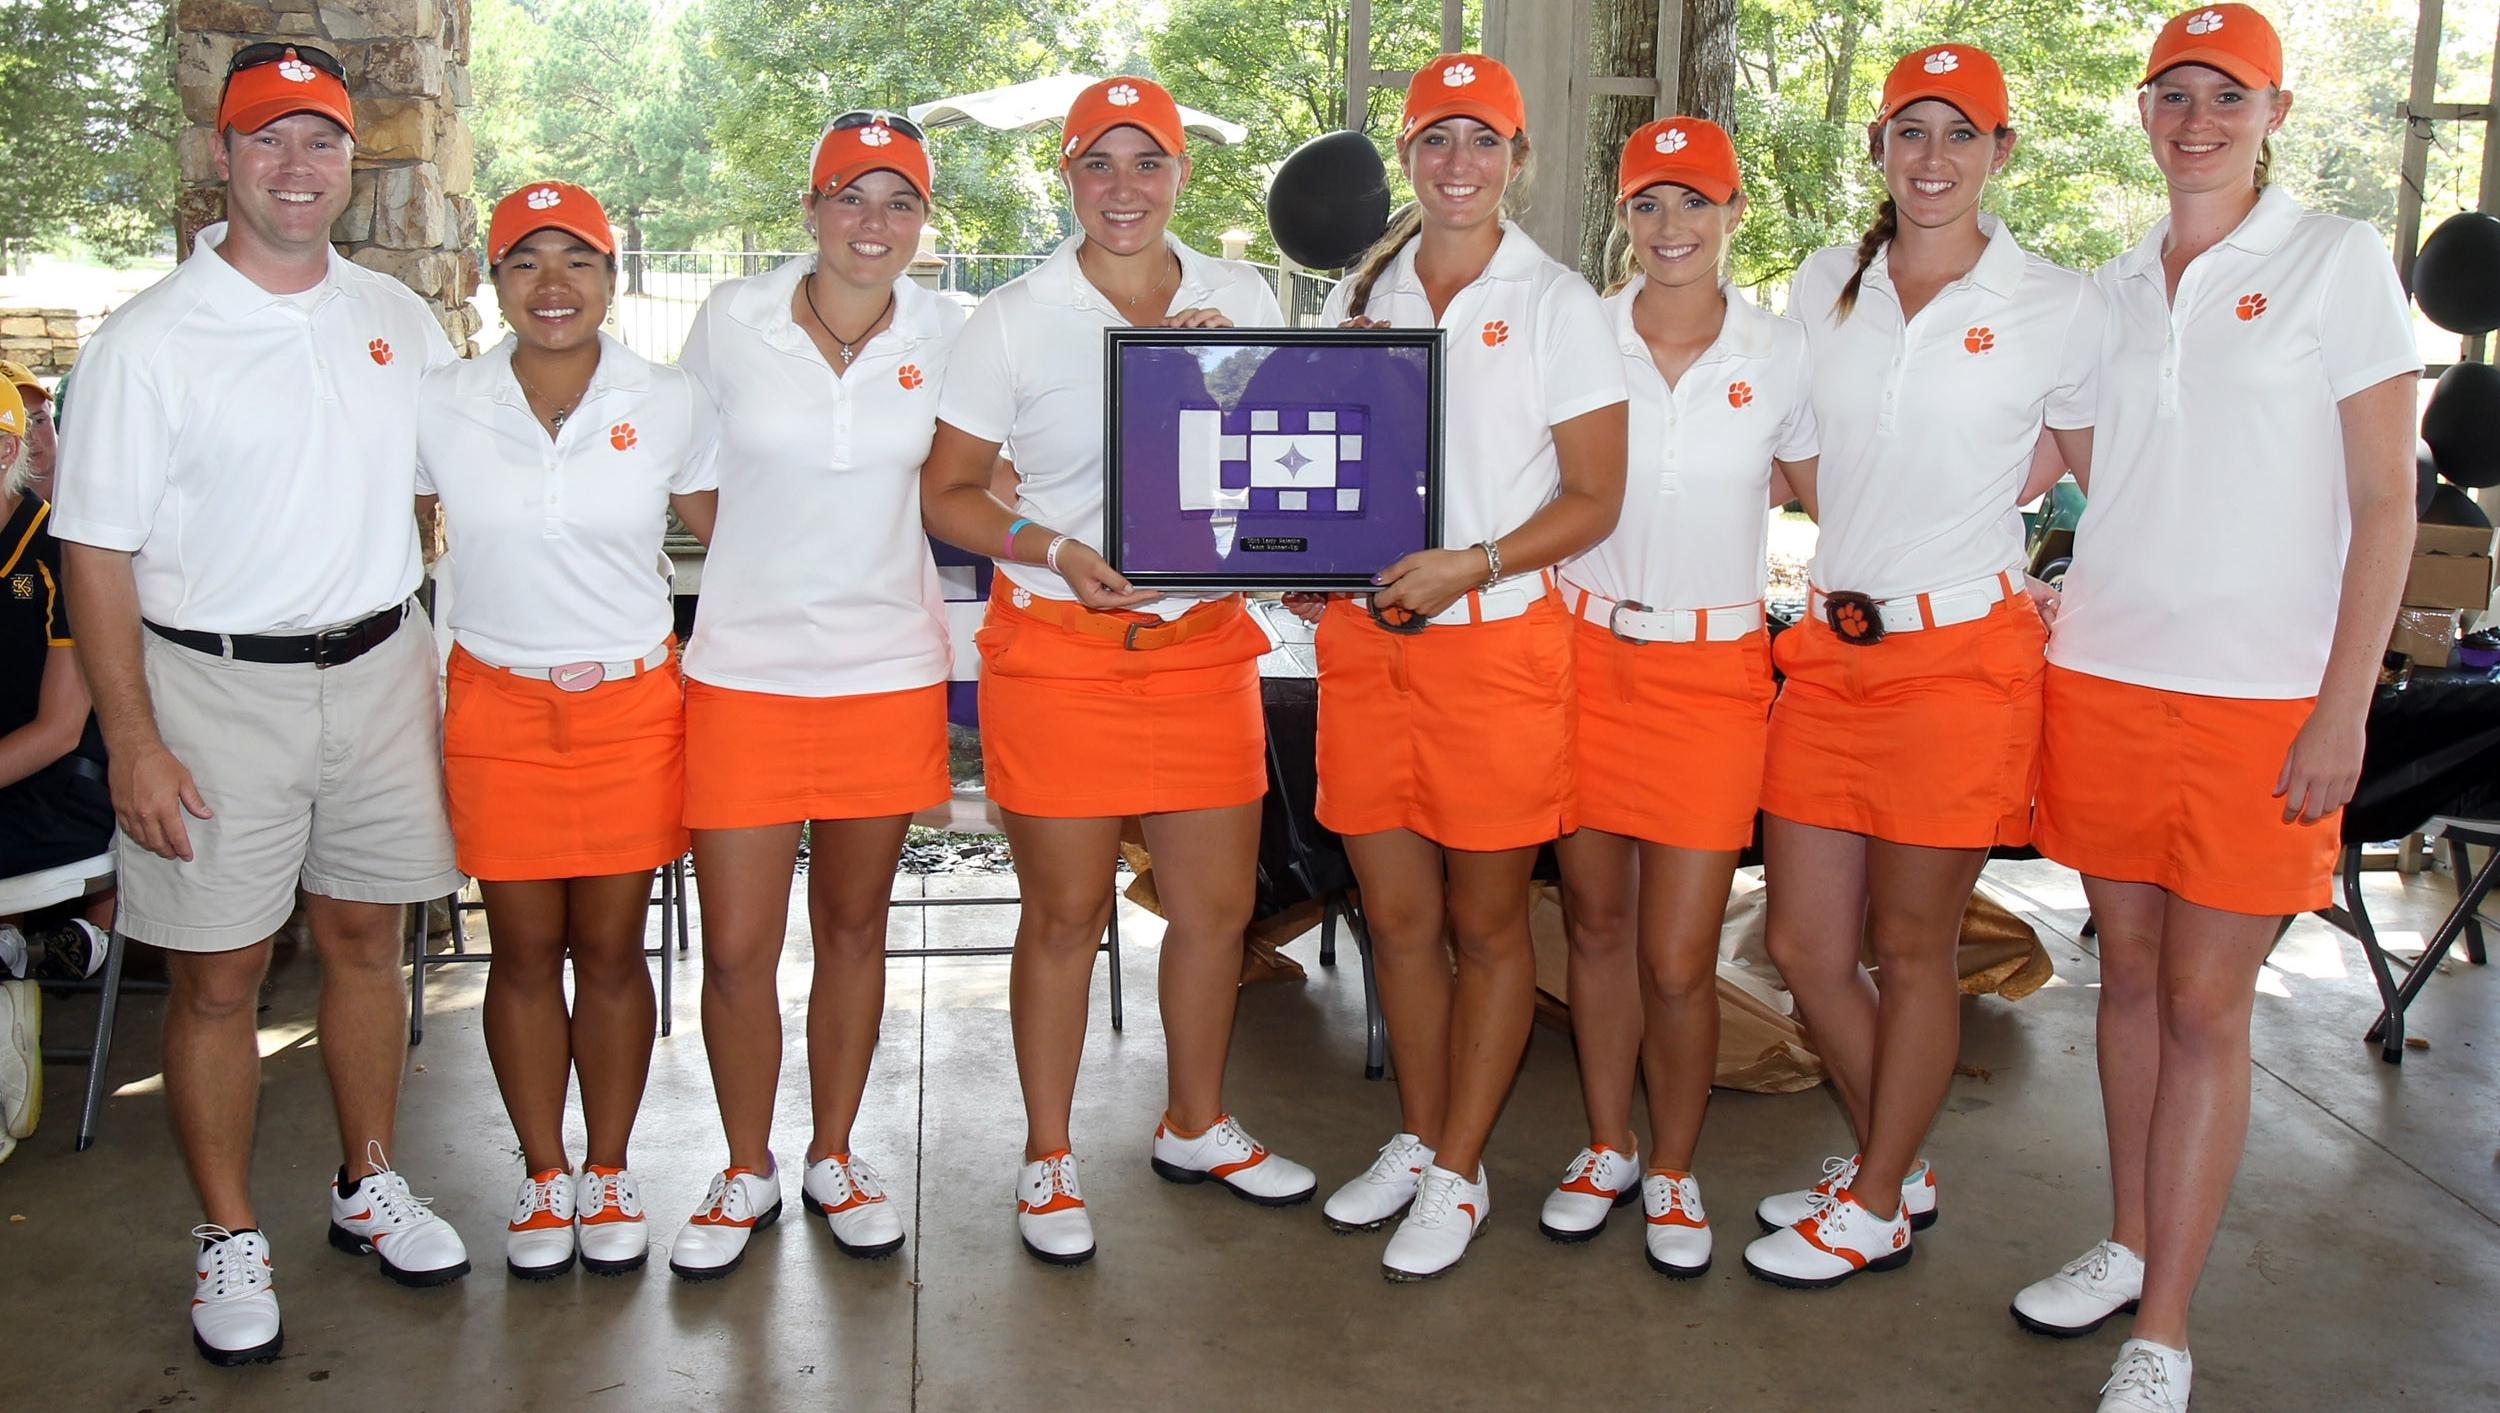 Tigers Face Off in ACC Championship